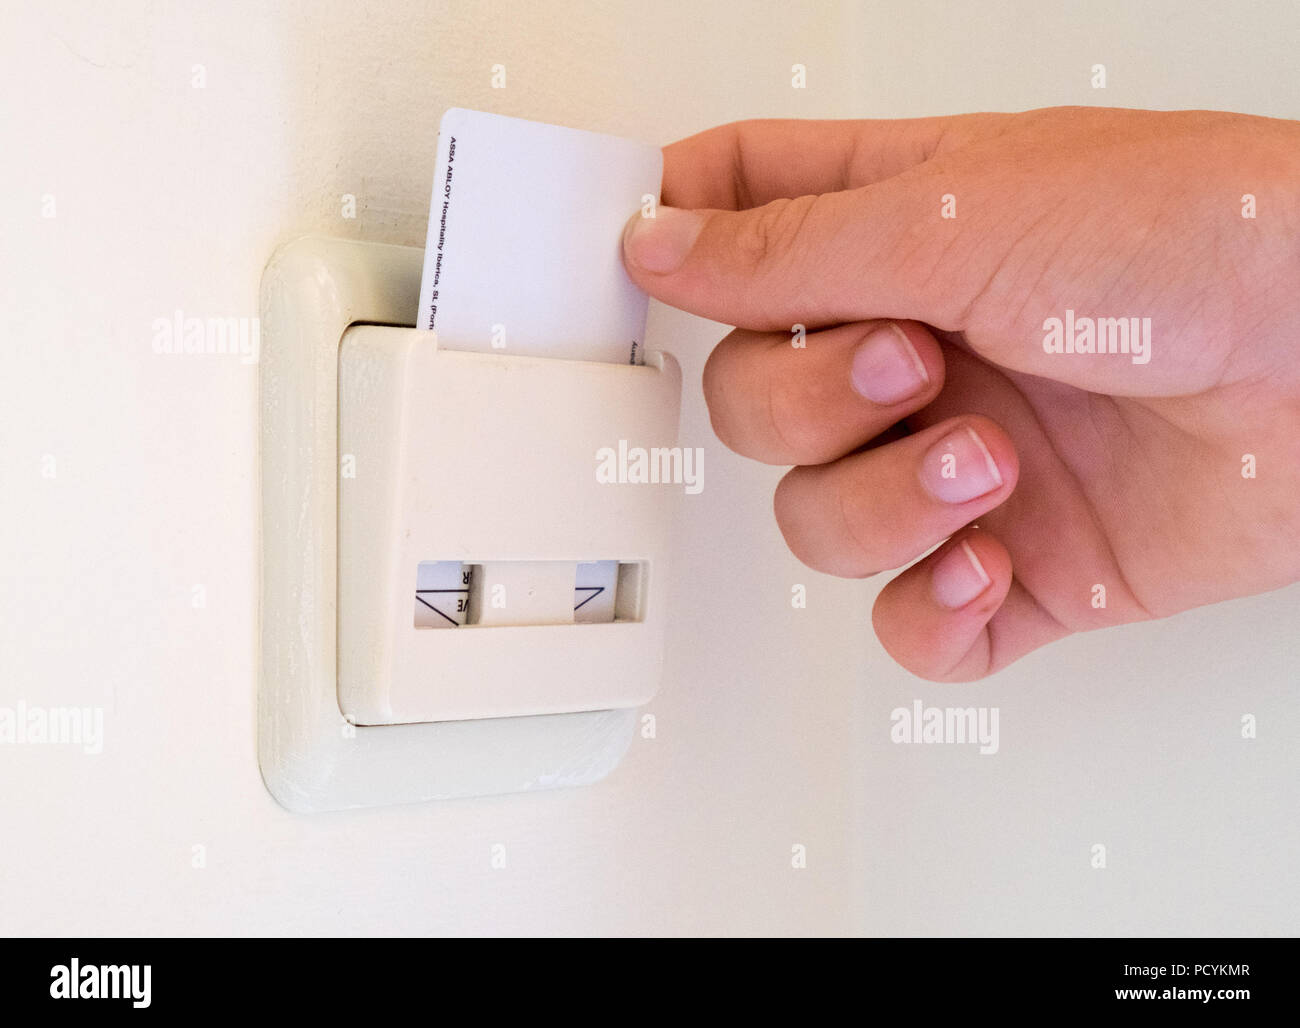 Hotel key card placed into a room switch to turn on the power - Stock Image